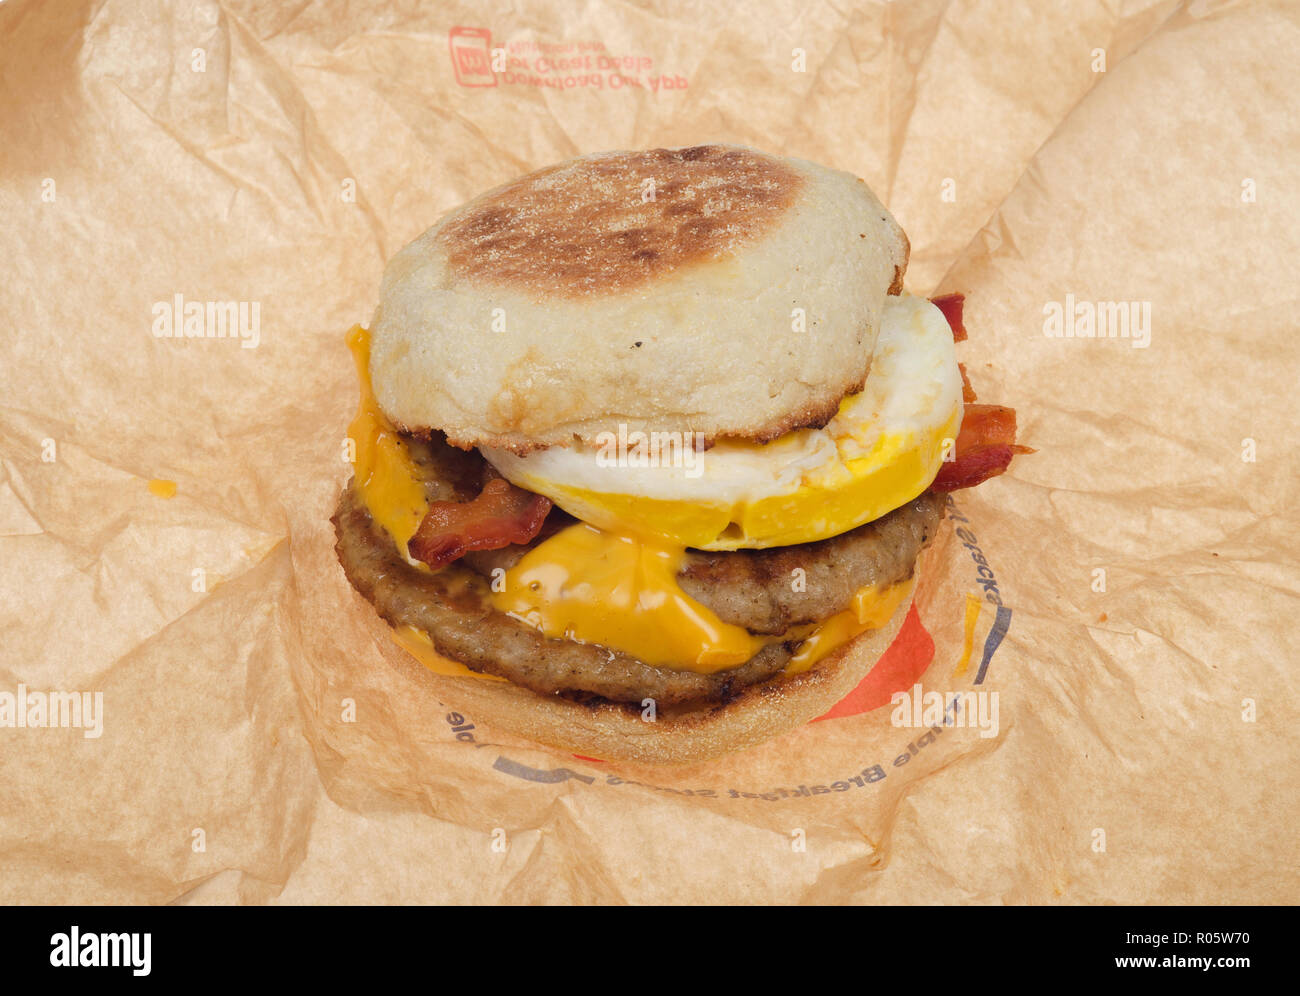 McDonald's new breakfast sandwich, the Triple Stack with 2 sausage patties, 2 slices american cheese, 2 strips of bacon, an egg on an english muffin - Stock Image